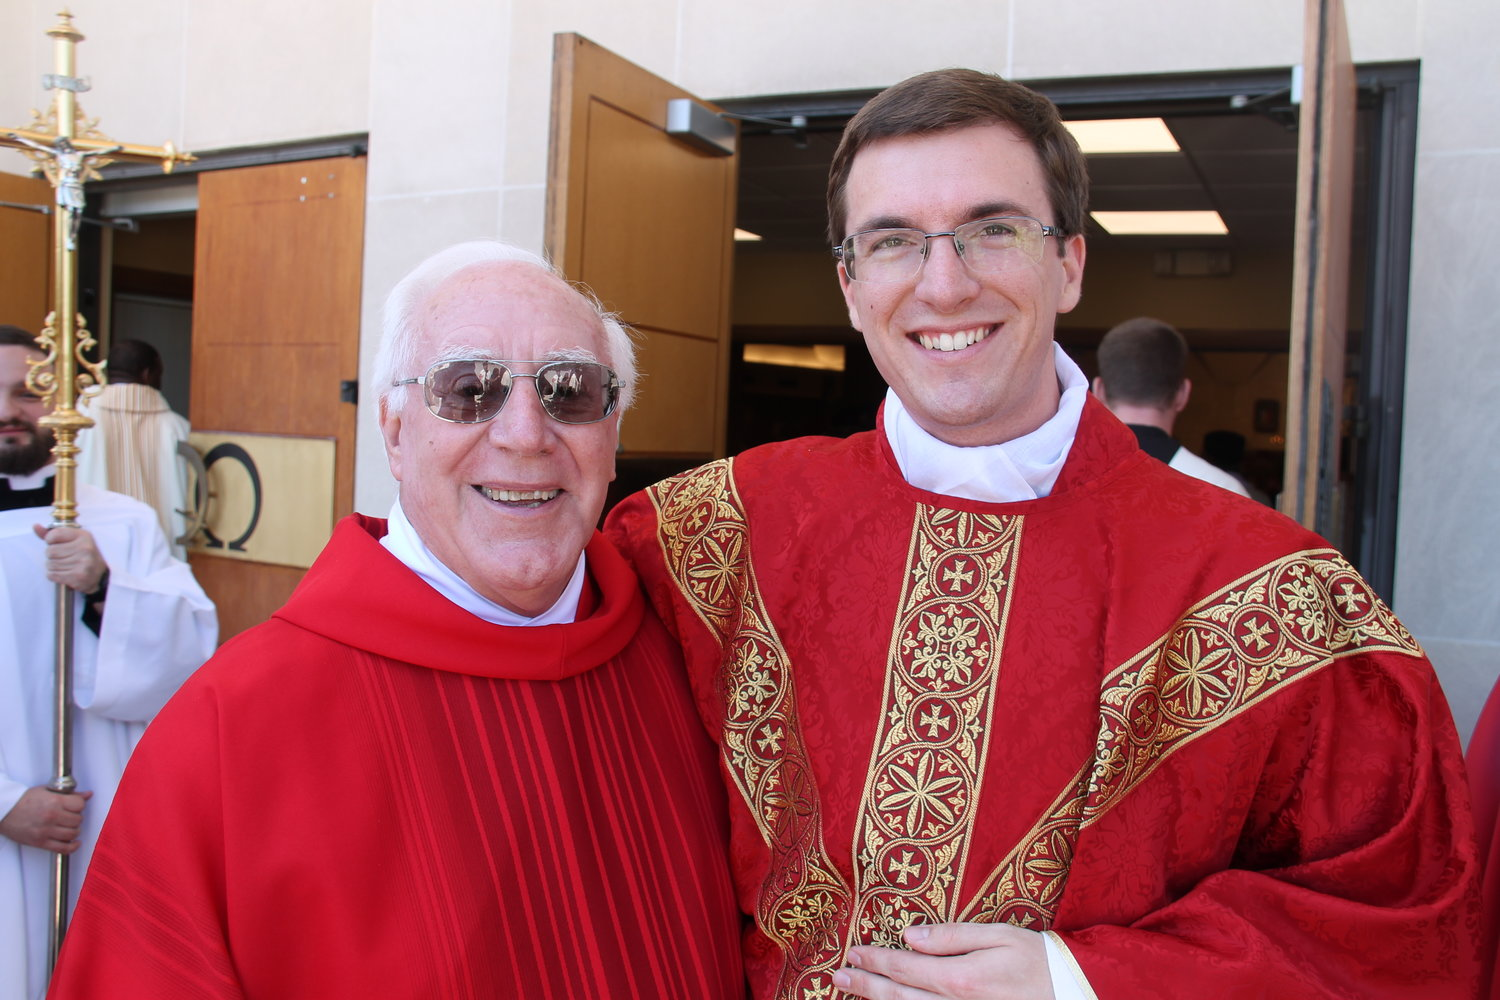 Deacon Francis Butel, who baptized Fr. Berhorst and was present at his First Holy Communion and confirmation, stands with Fr. Berhorst.